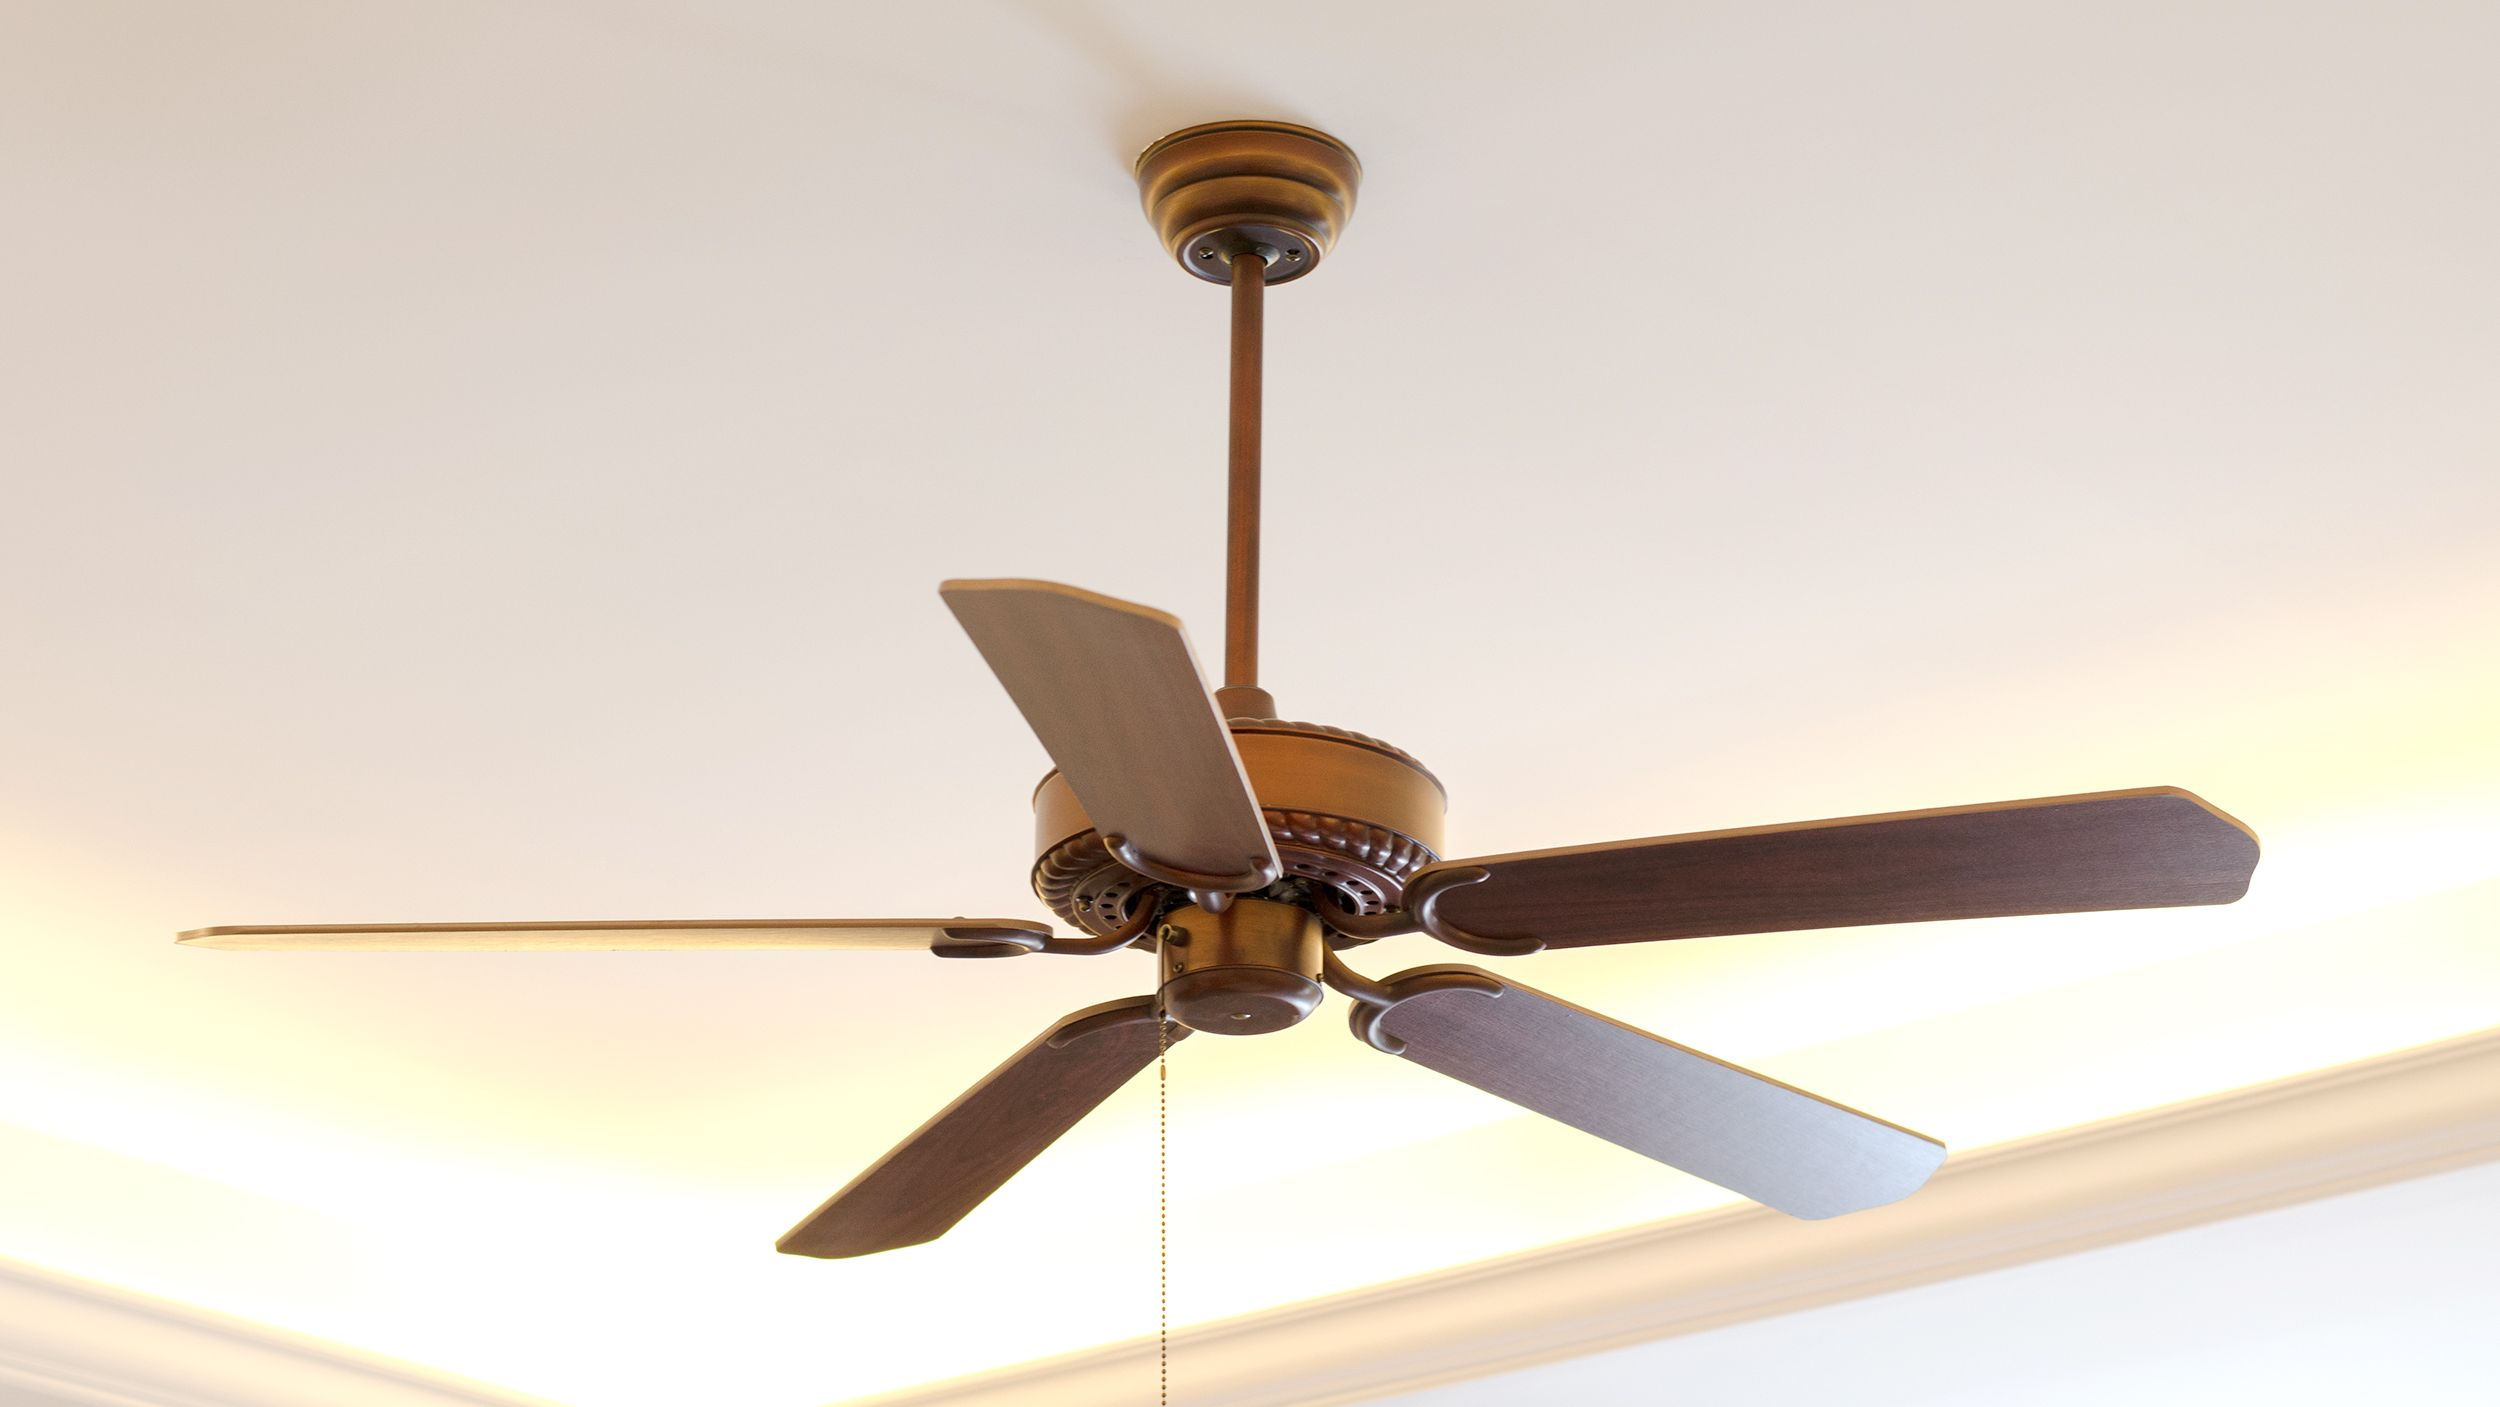 Change The Direction Of Your Ceiling Fan Most Fans Have Two Directions Counterclockwise